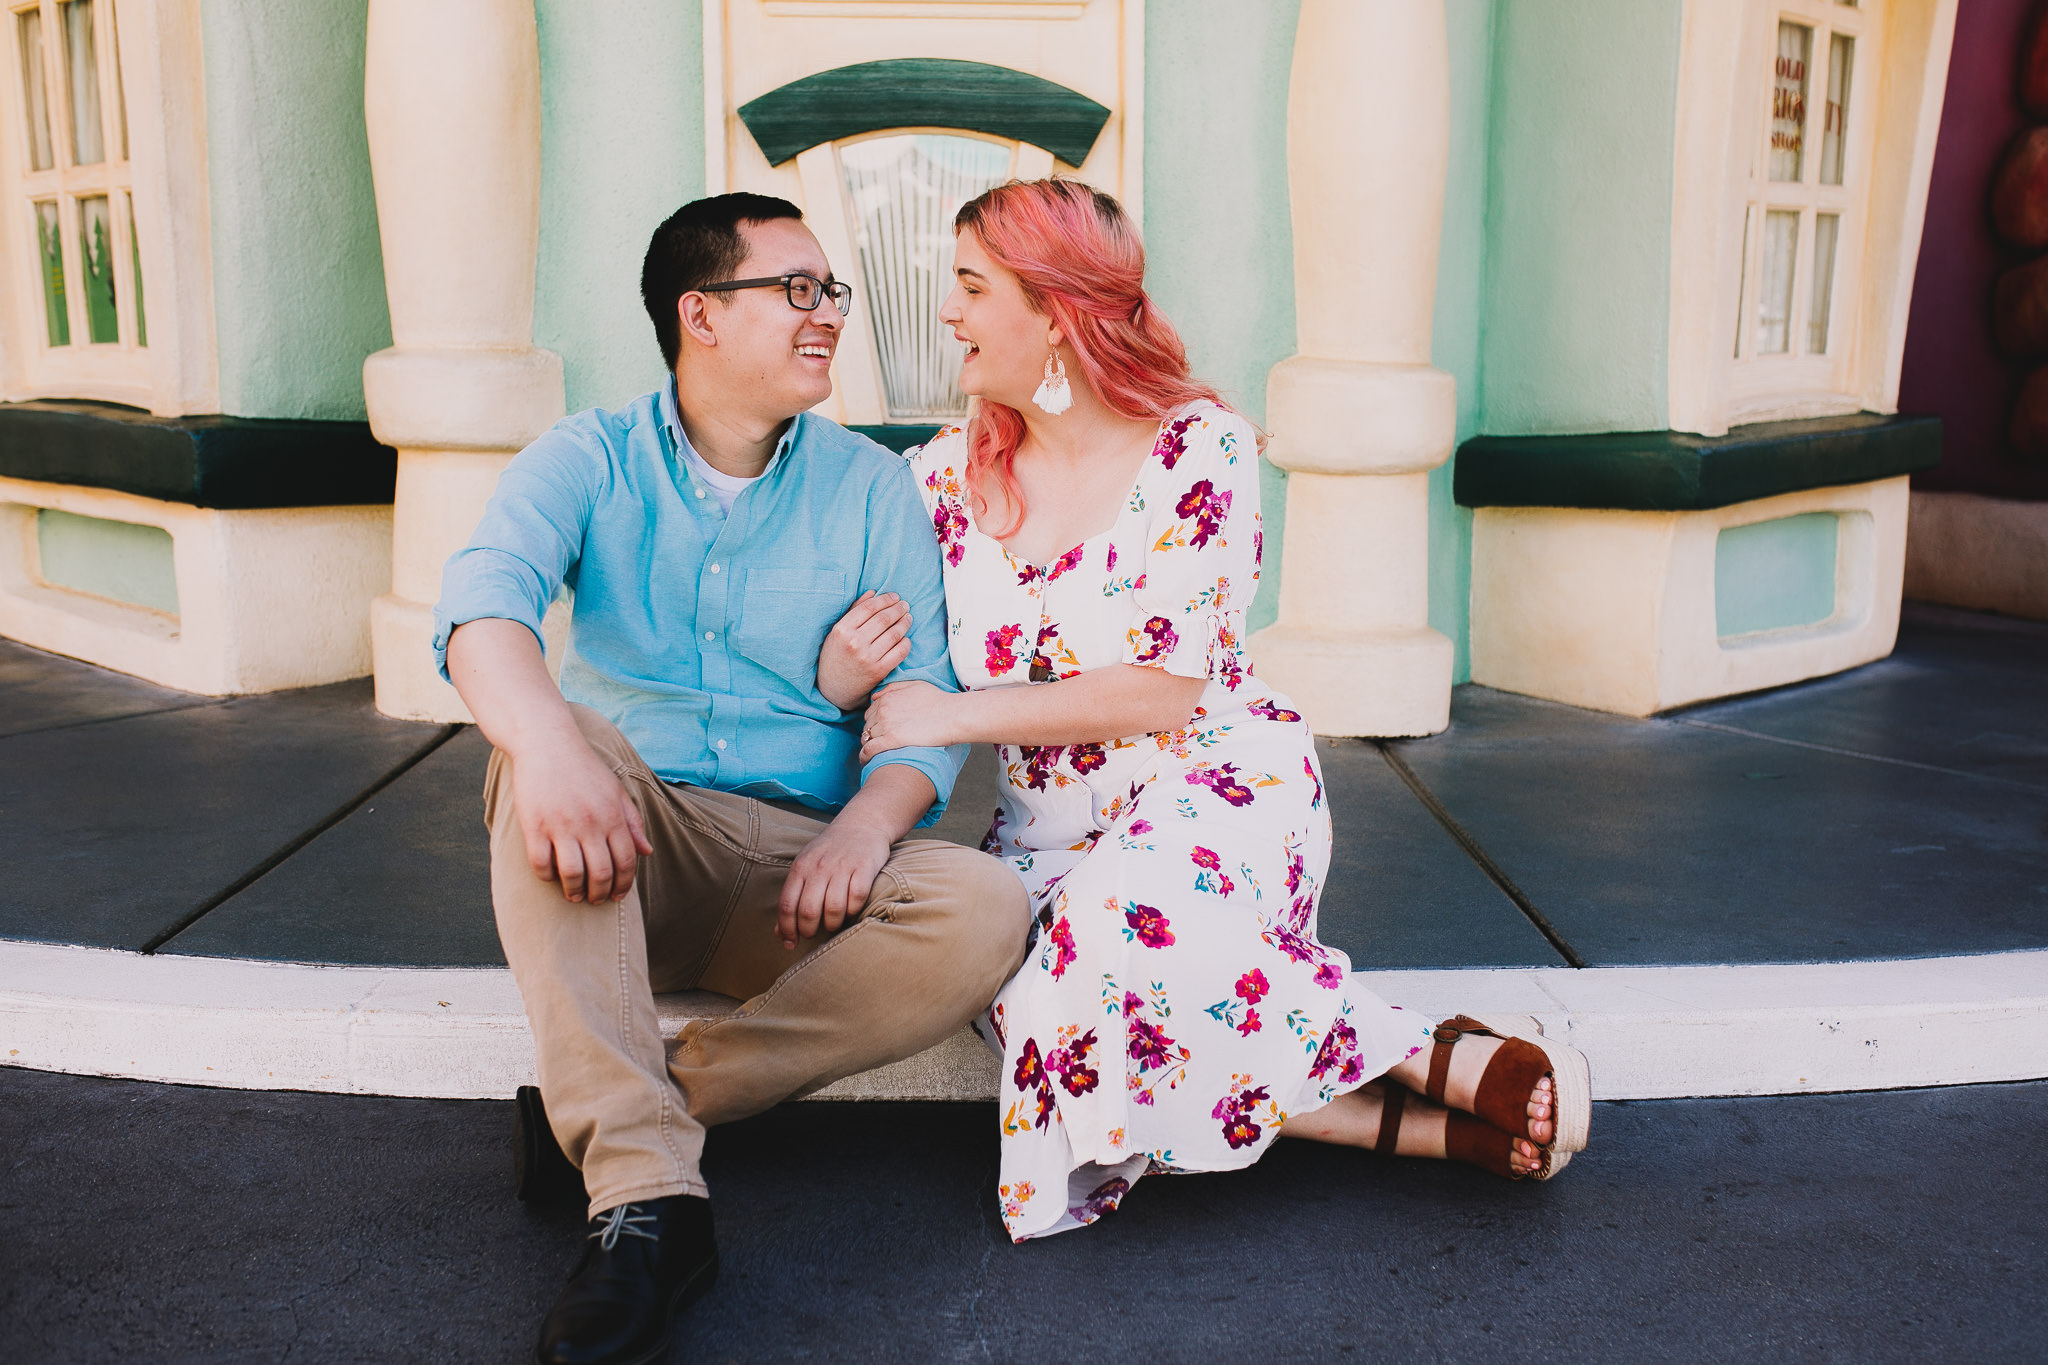 Archer Inspired Photography Disneyland Engagement Wedding Session Southern California Kayla and Kevin Lifestyle Documentary-79.jpg